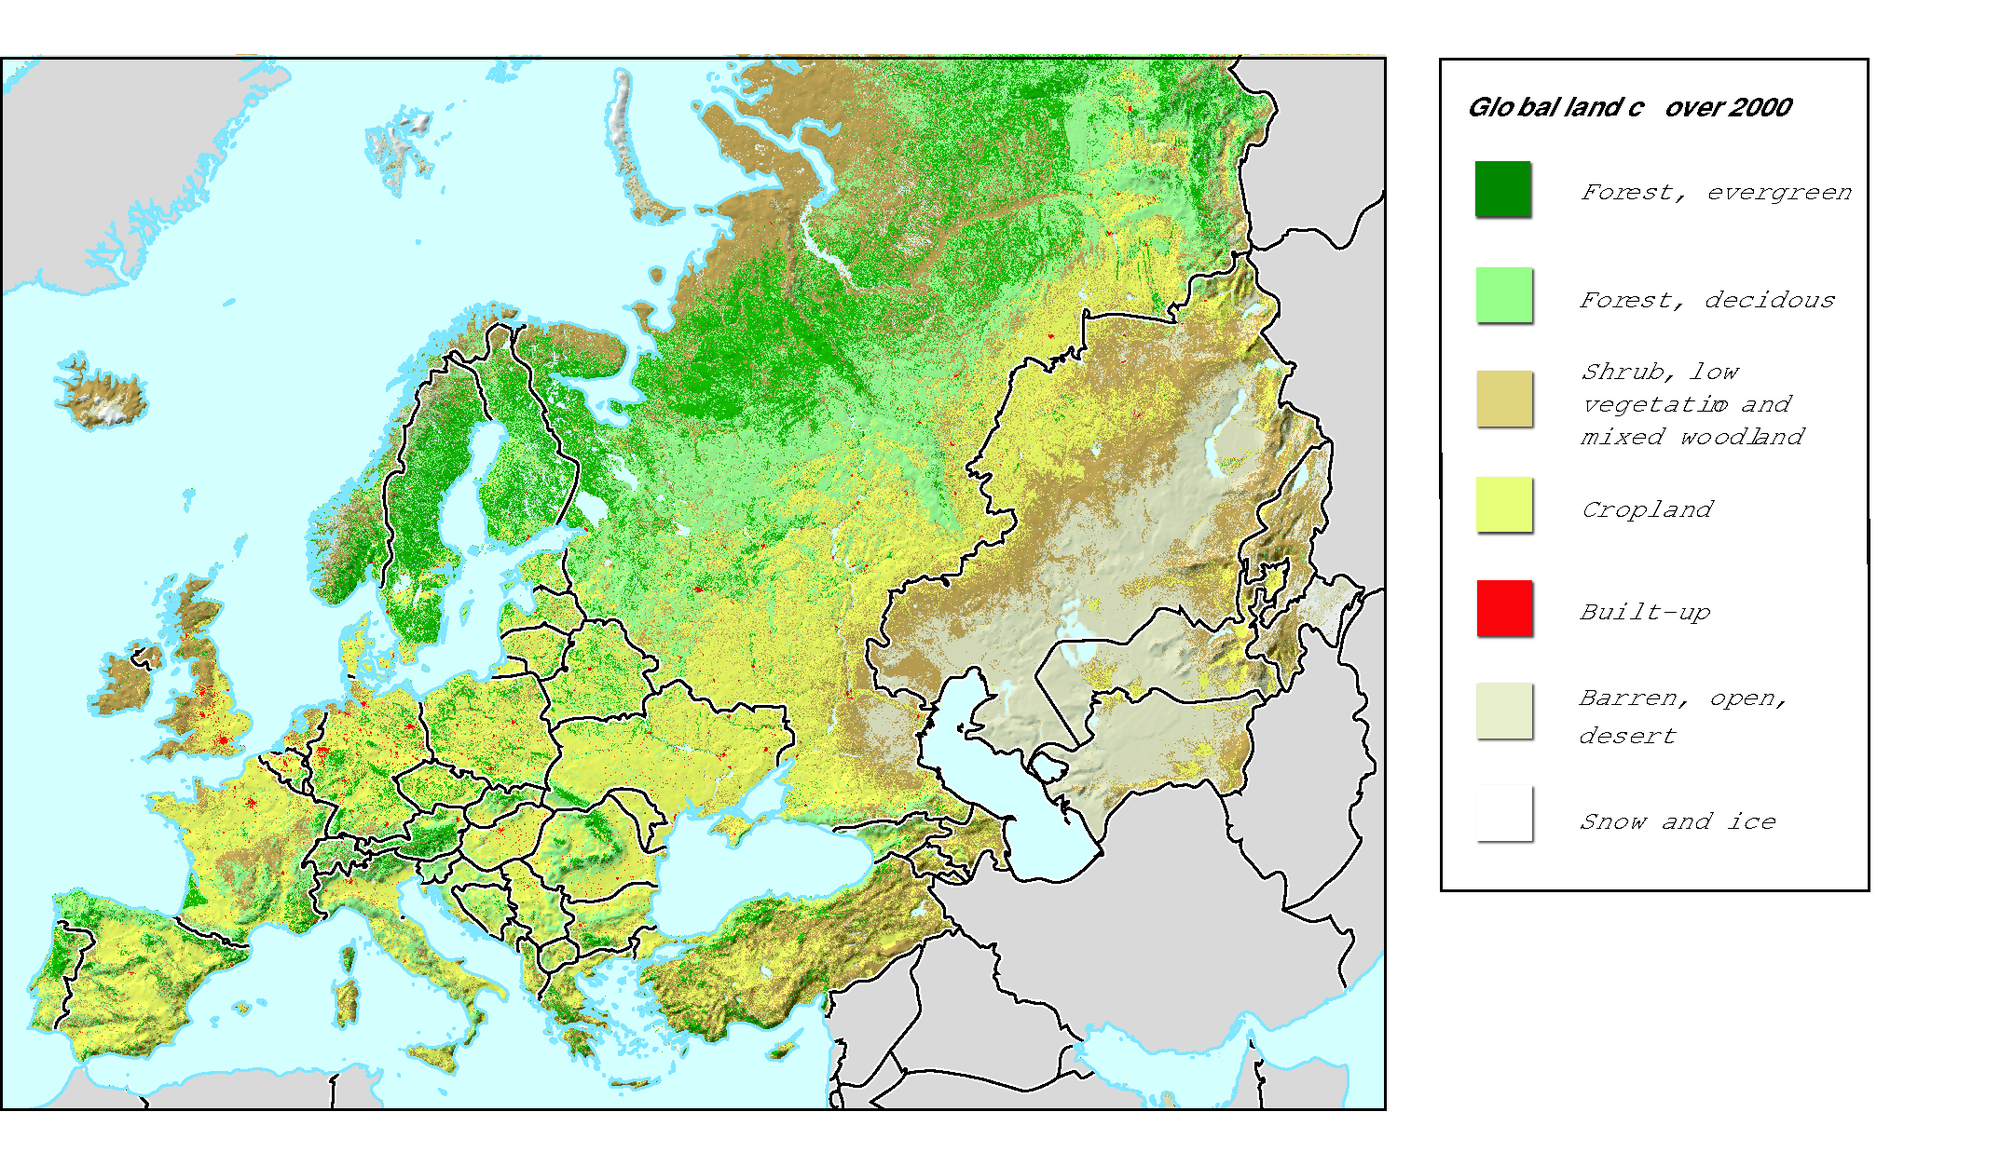 europe natural resources map Distribution of natural resources in the pan European region for